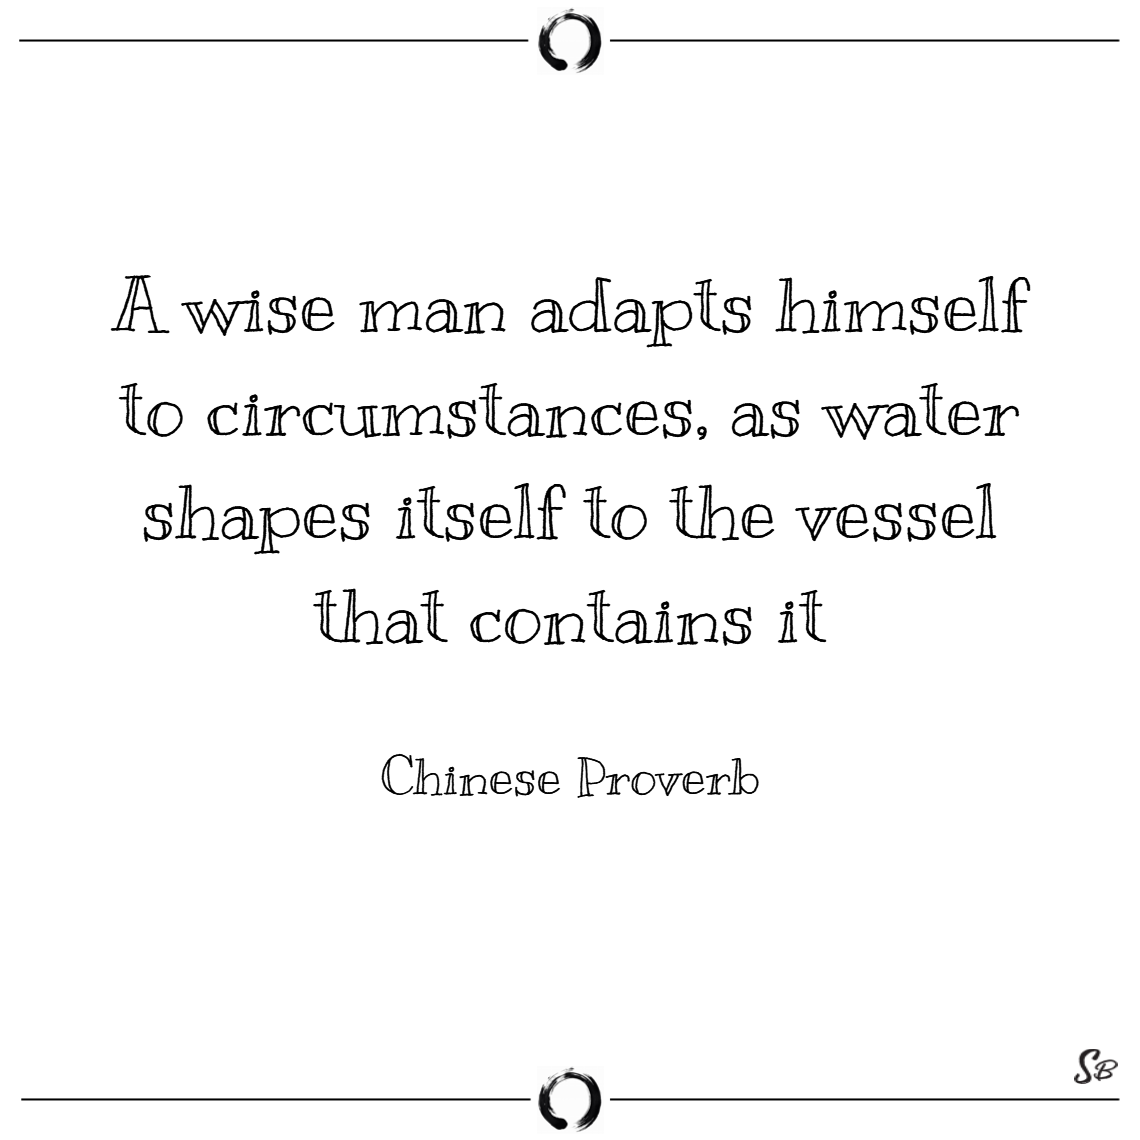 A wise man adapts himself to circumstances, as water shapes itself to the vessel that contains it. – chinese proverb